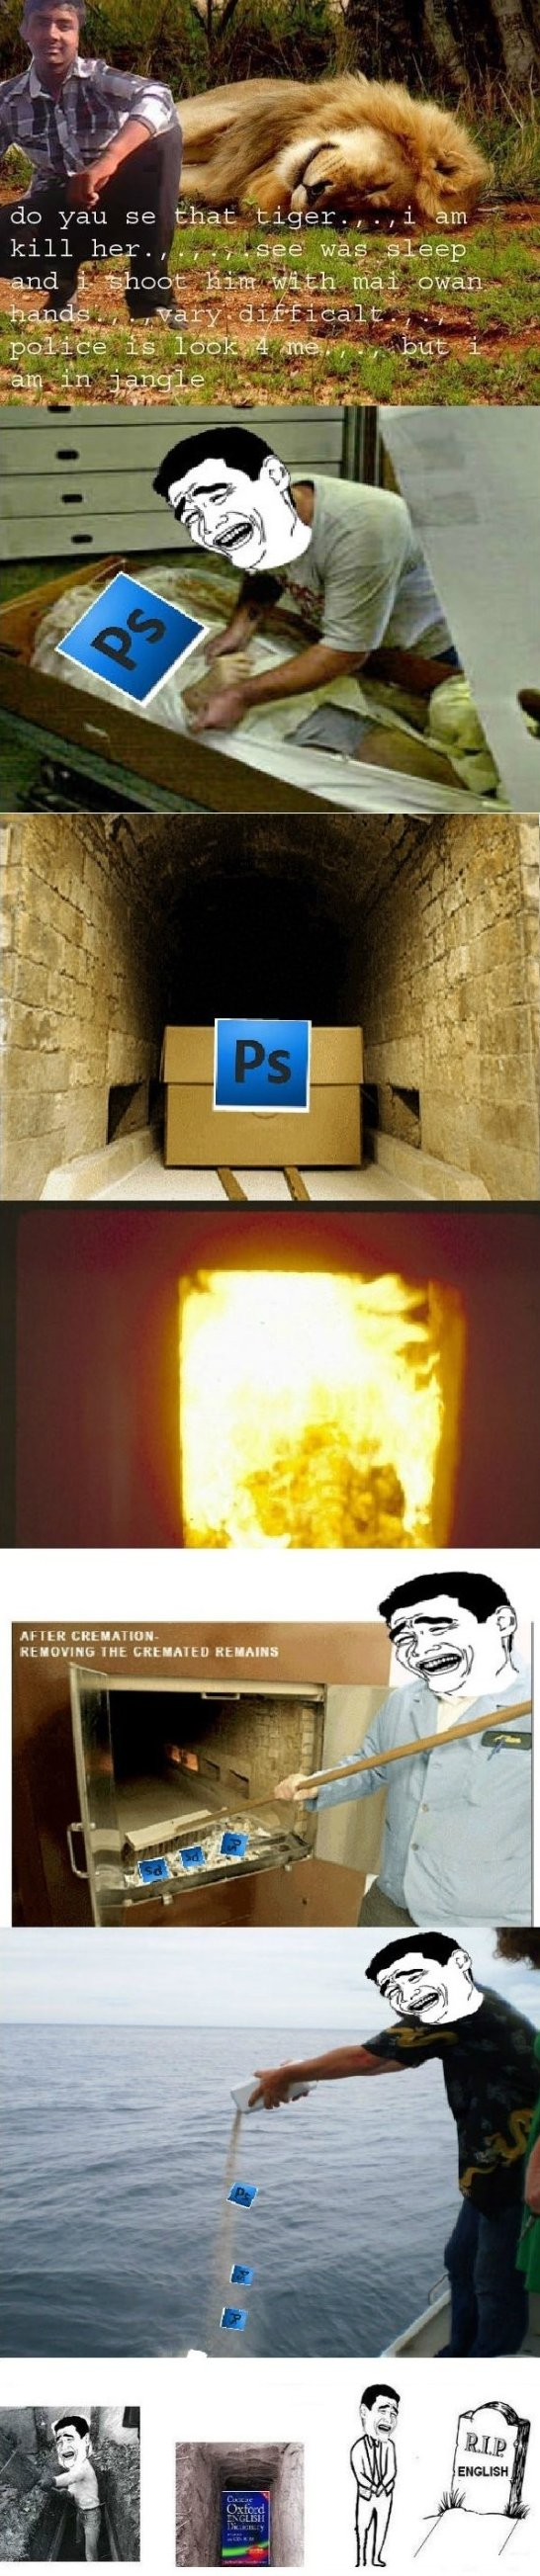 Rip photoshop and grammar meme lol funny gifs rip photoshop and grammar meme lol thecheapjerseys Images